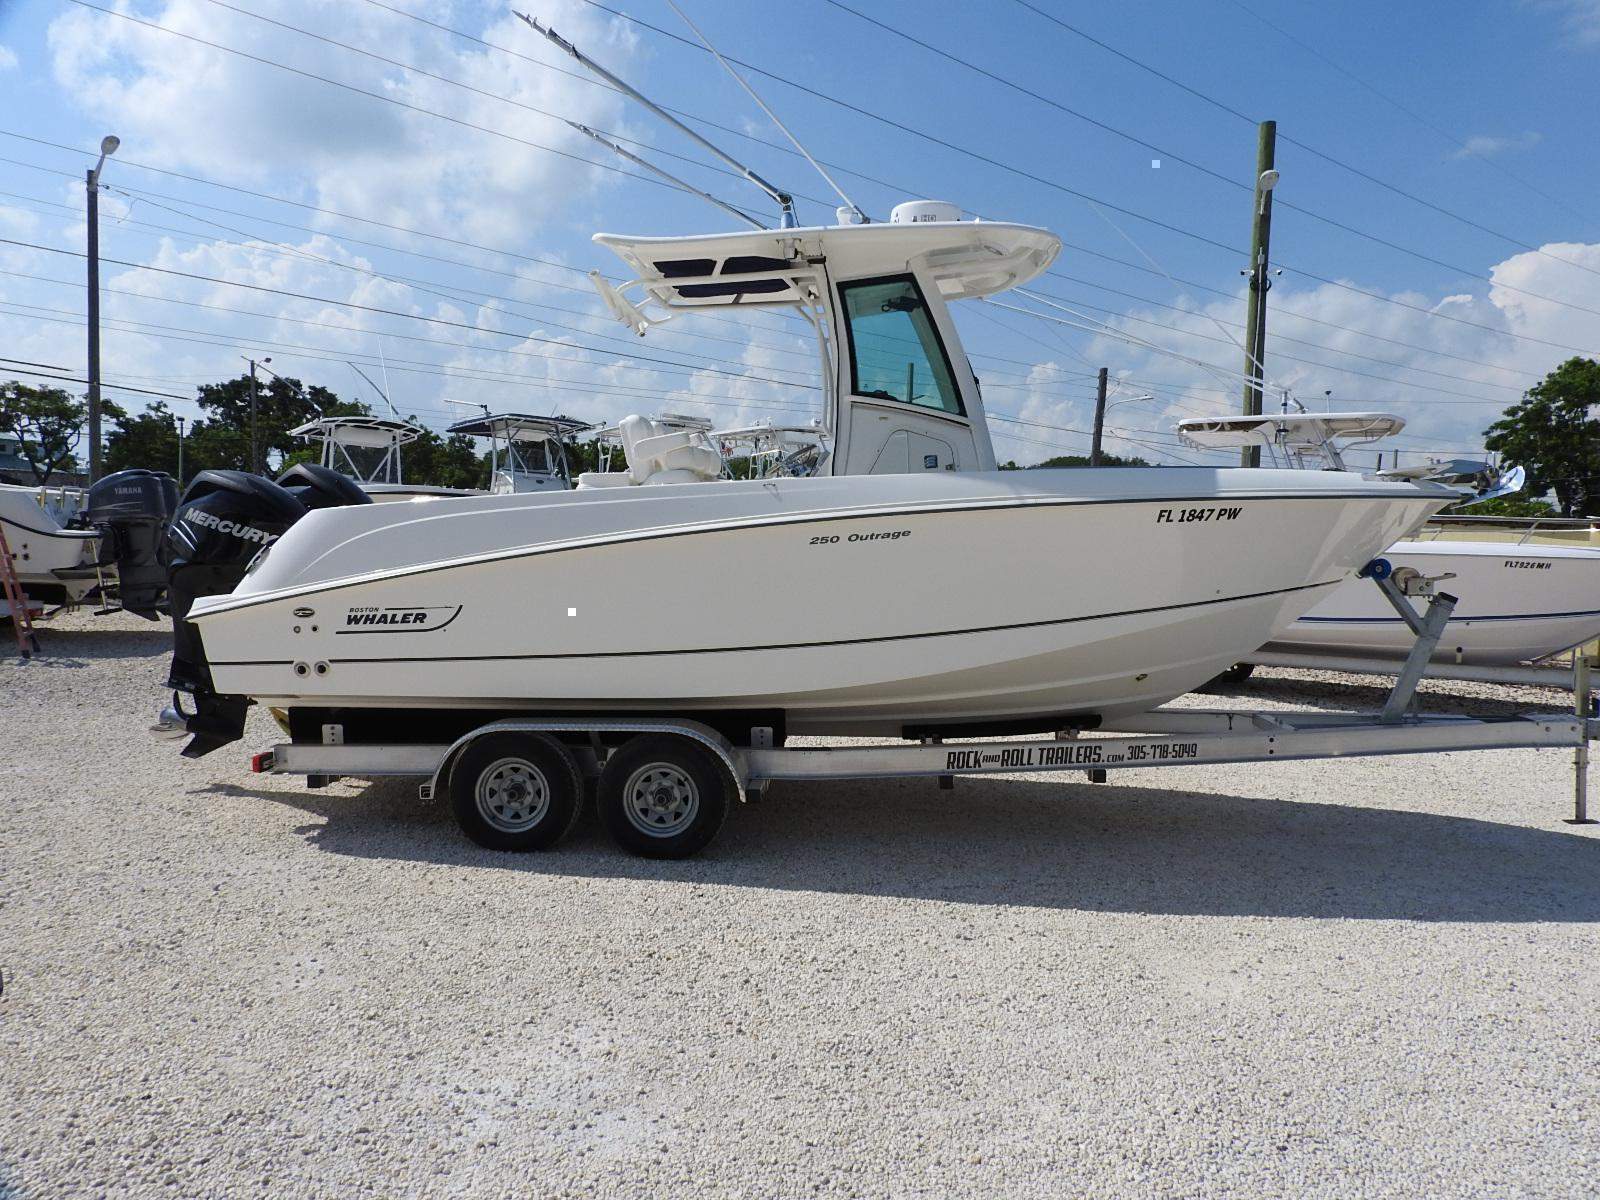 2014 Boston Whaler 250 Outrage for sale in Key Largo, FL  Nations